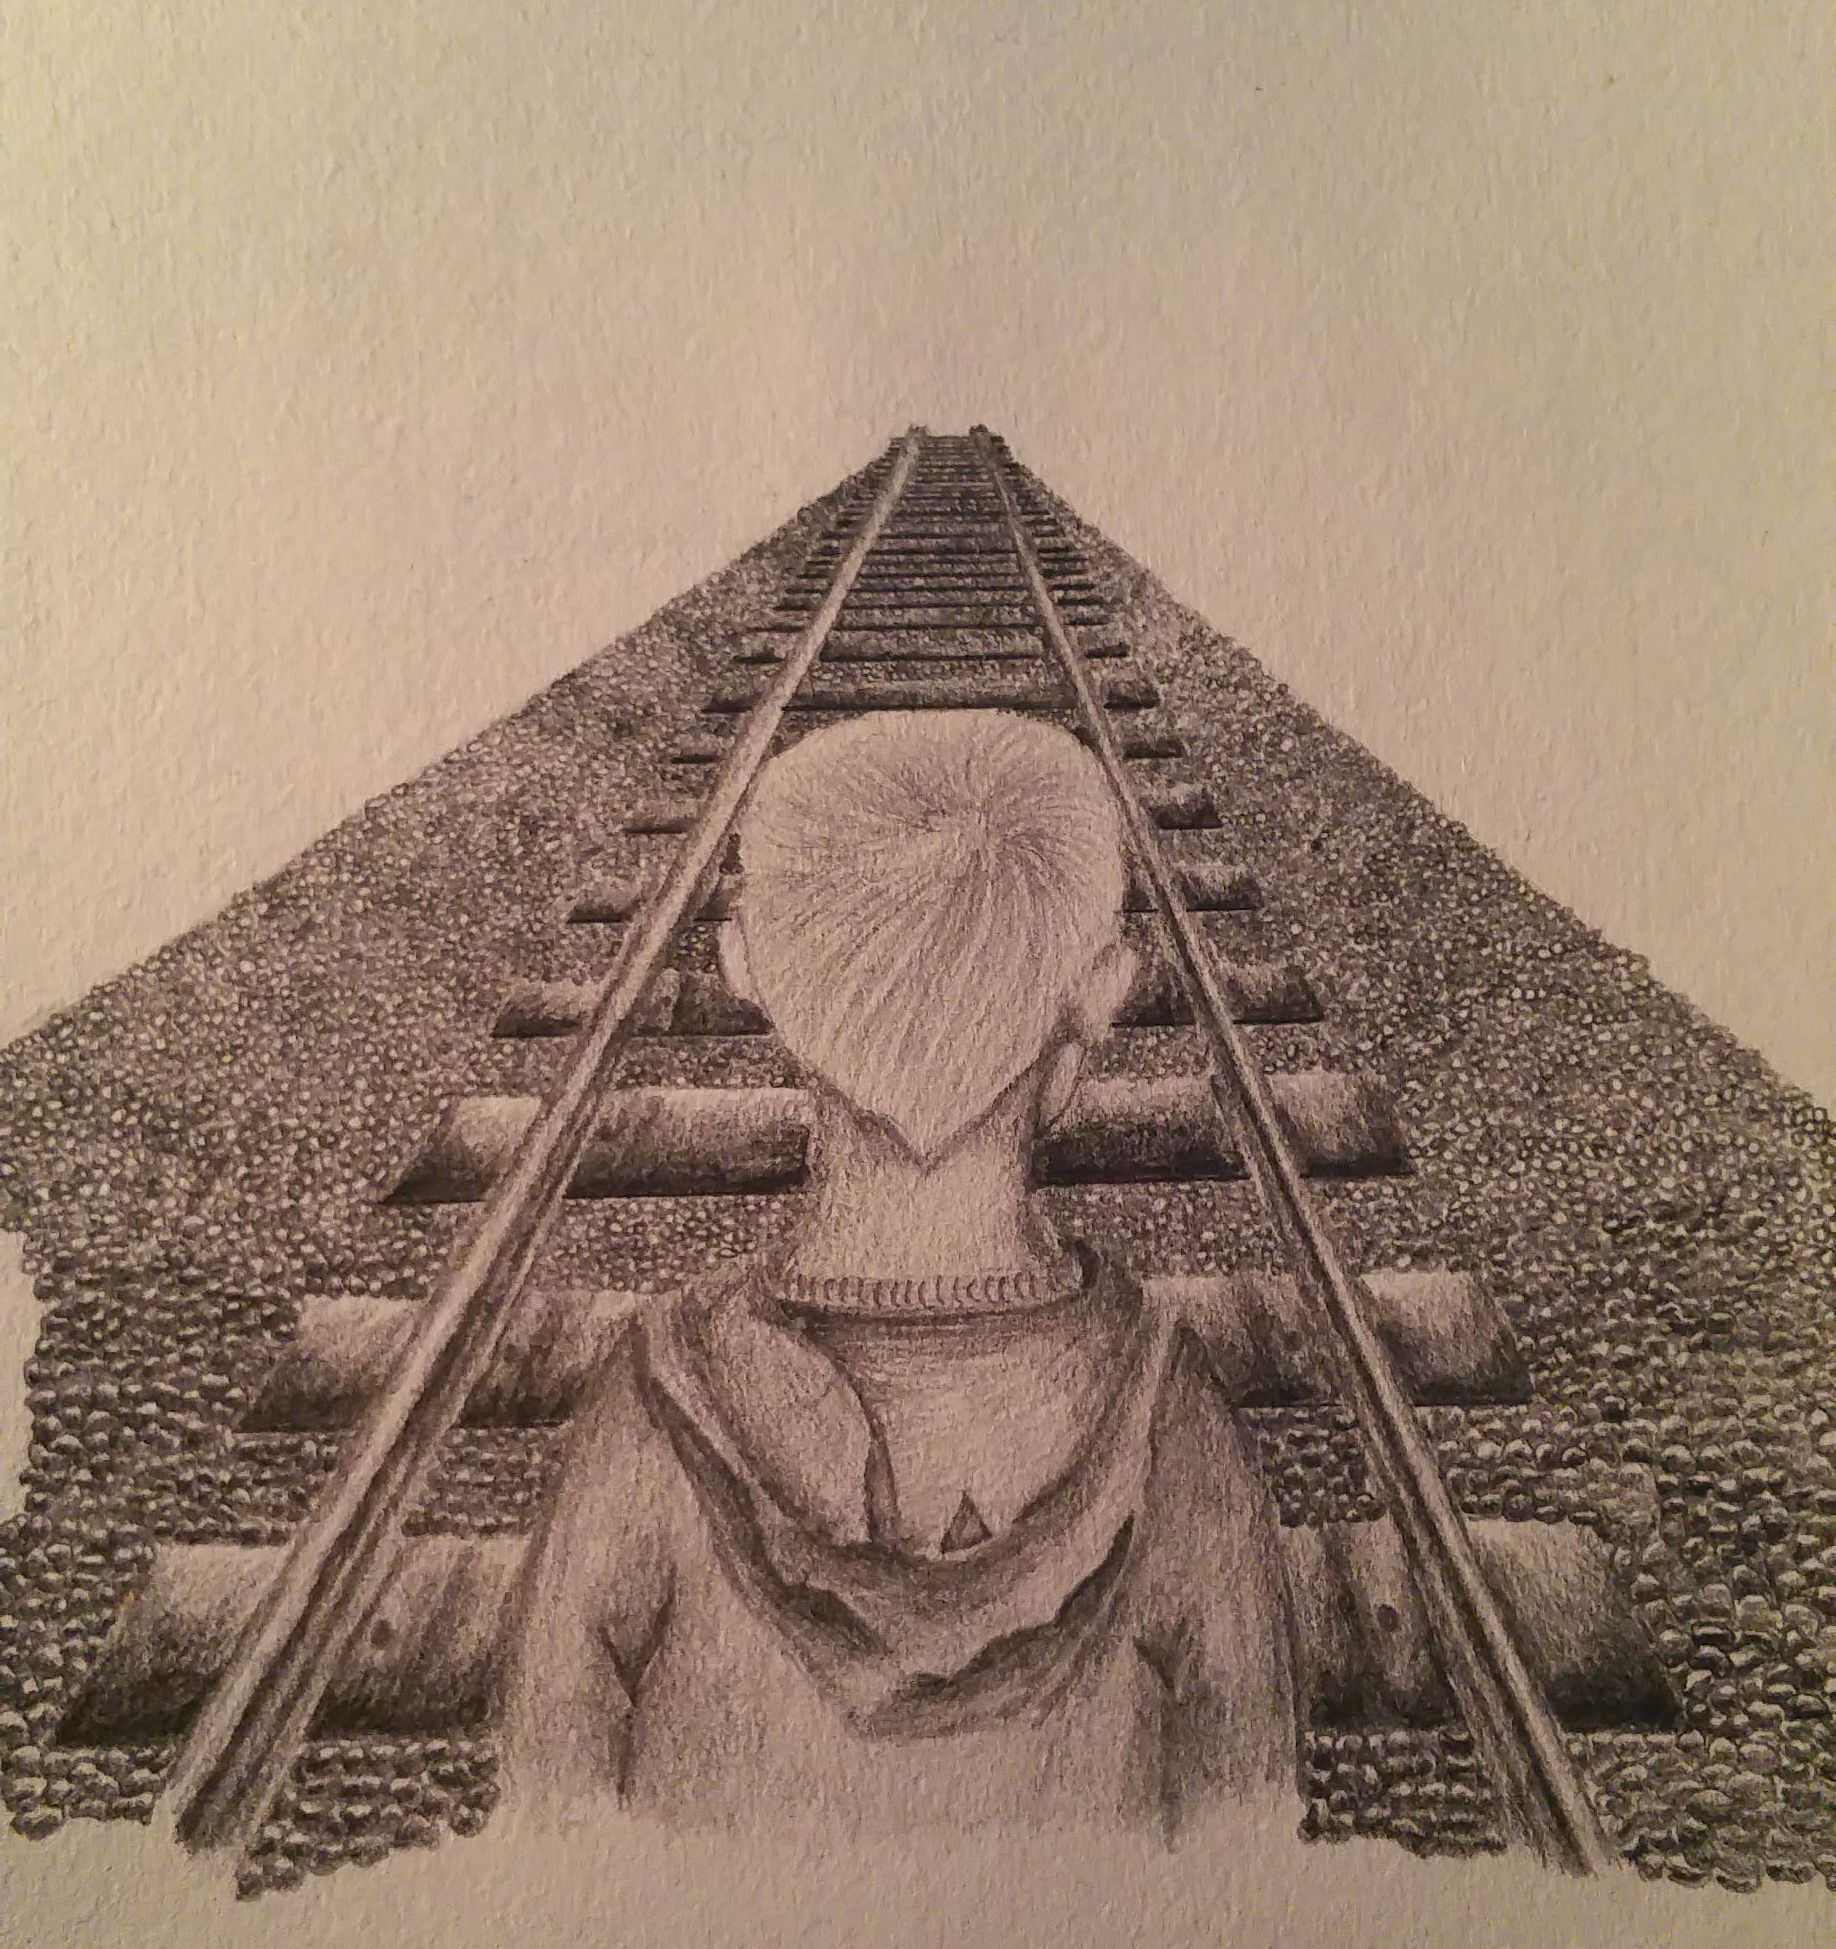 Stage 4 of my sketch railway and child complete theme orphans arts sketch pencil railway pennyappeal orphan competition artcompetition child